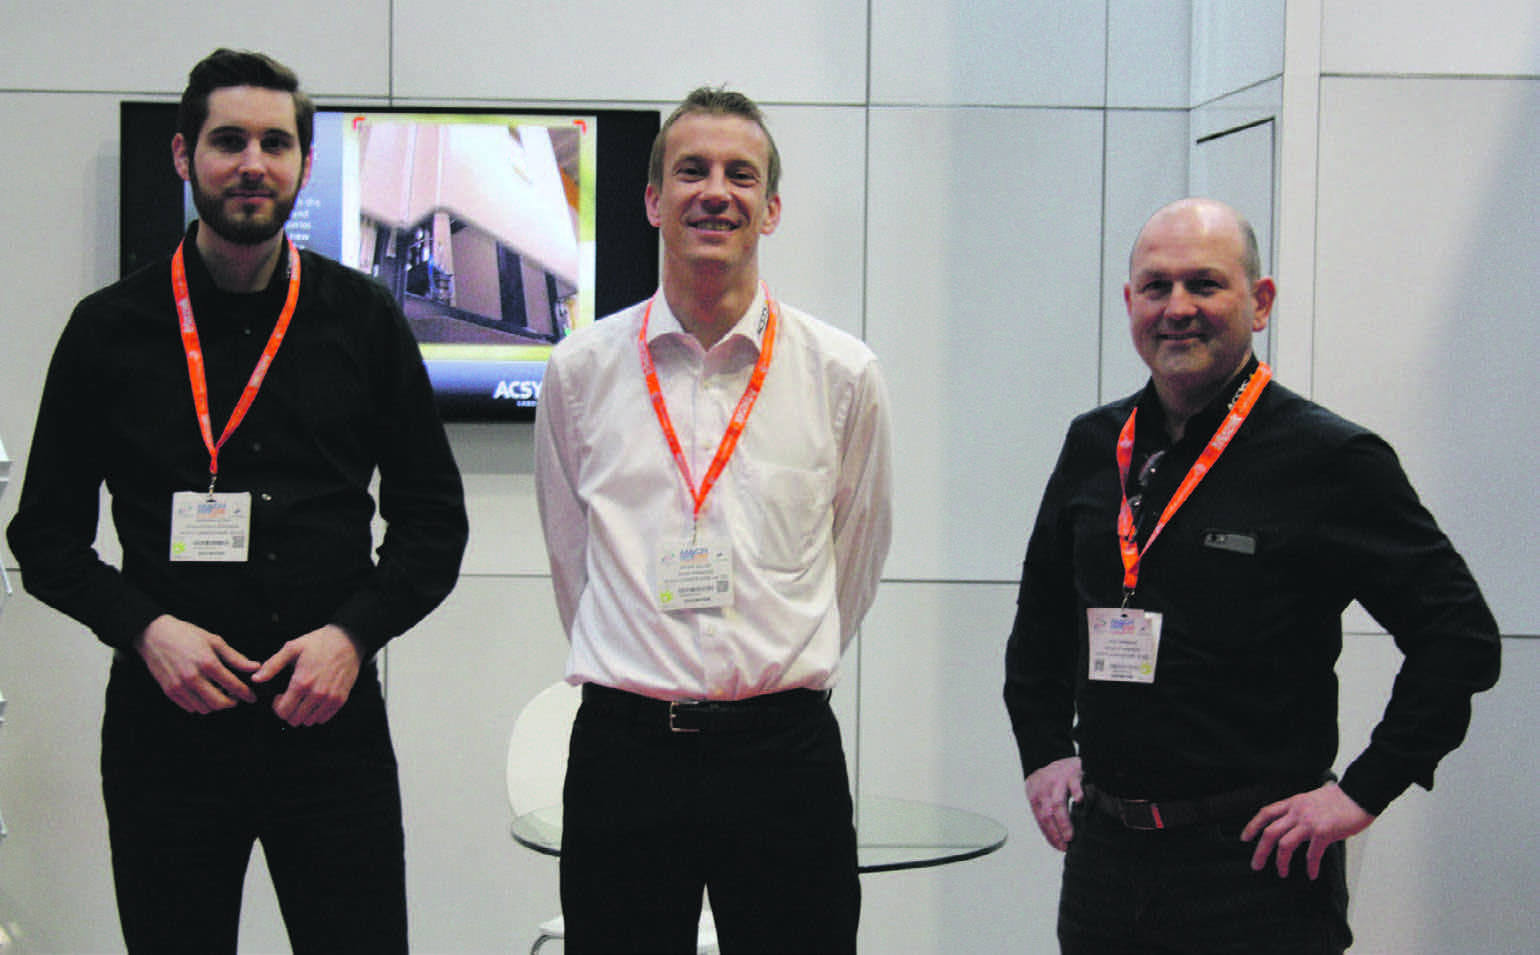 Andreas Stirm, Laser Application Engineer (Left), Dieter Miller, Sales Director Export (Centre) and Mick Hemmings, UK Sales Manager.